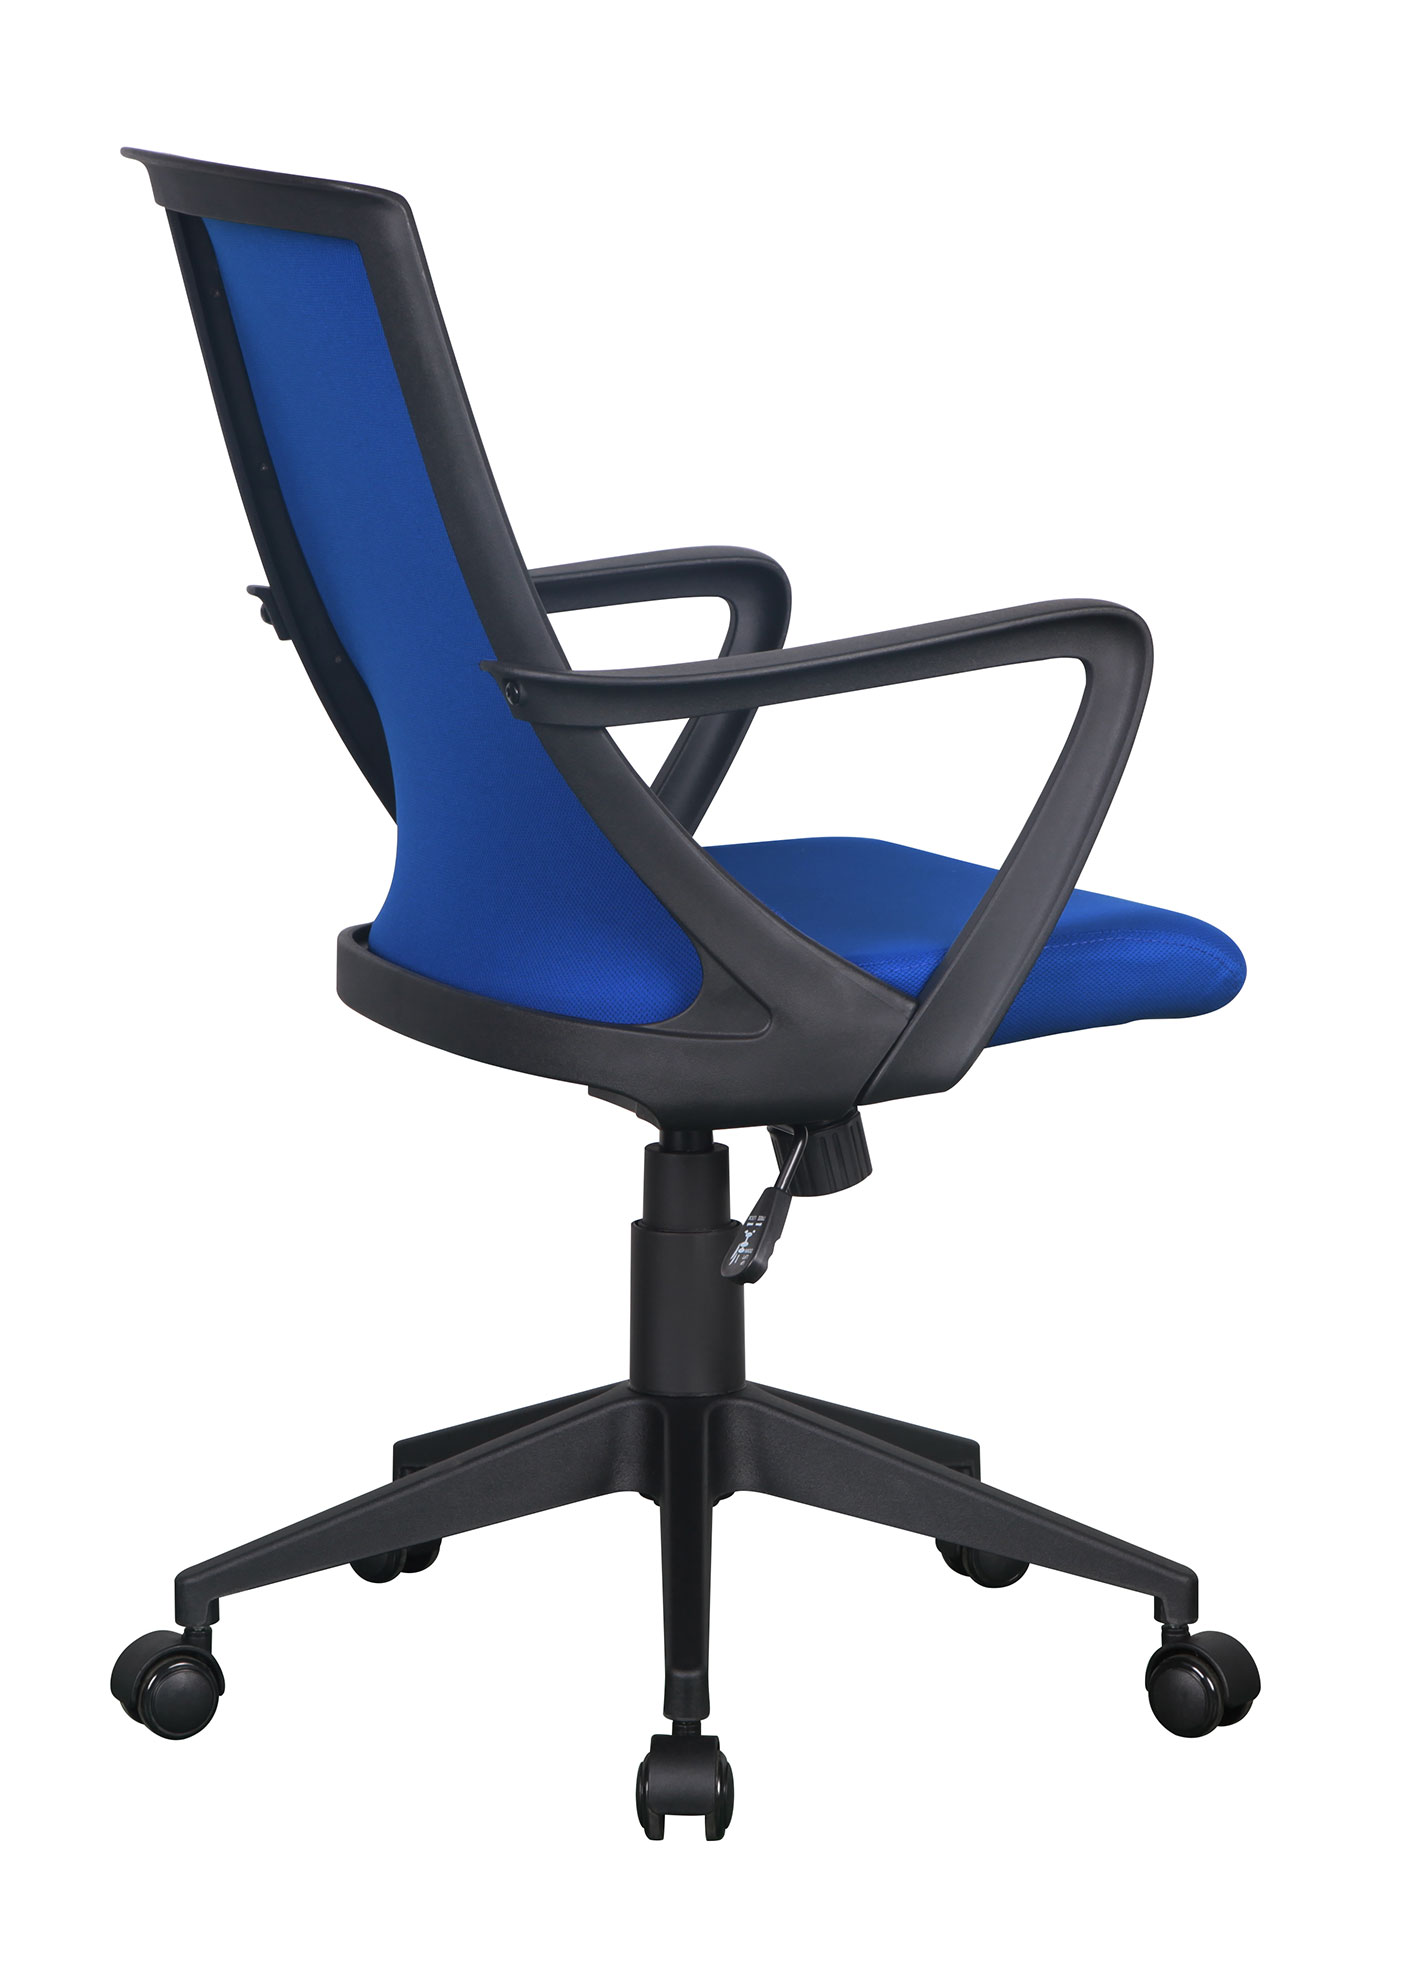 white swivel desk chair uk modern patio sixbros office different colors 0722m ebay